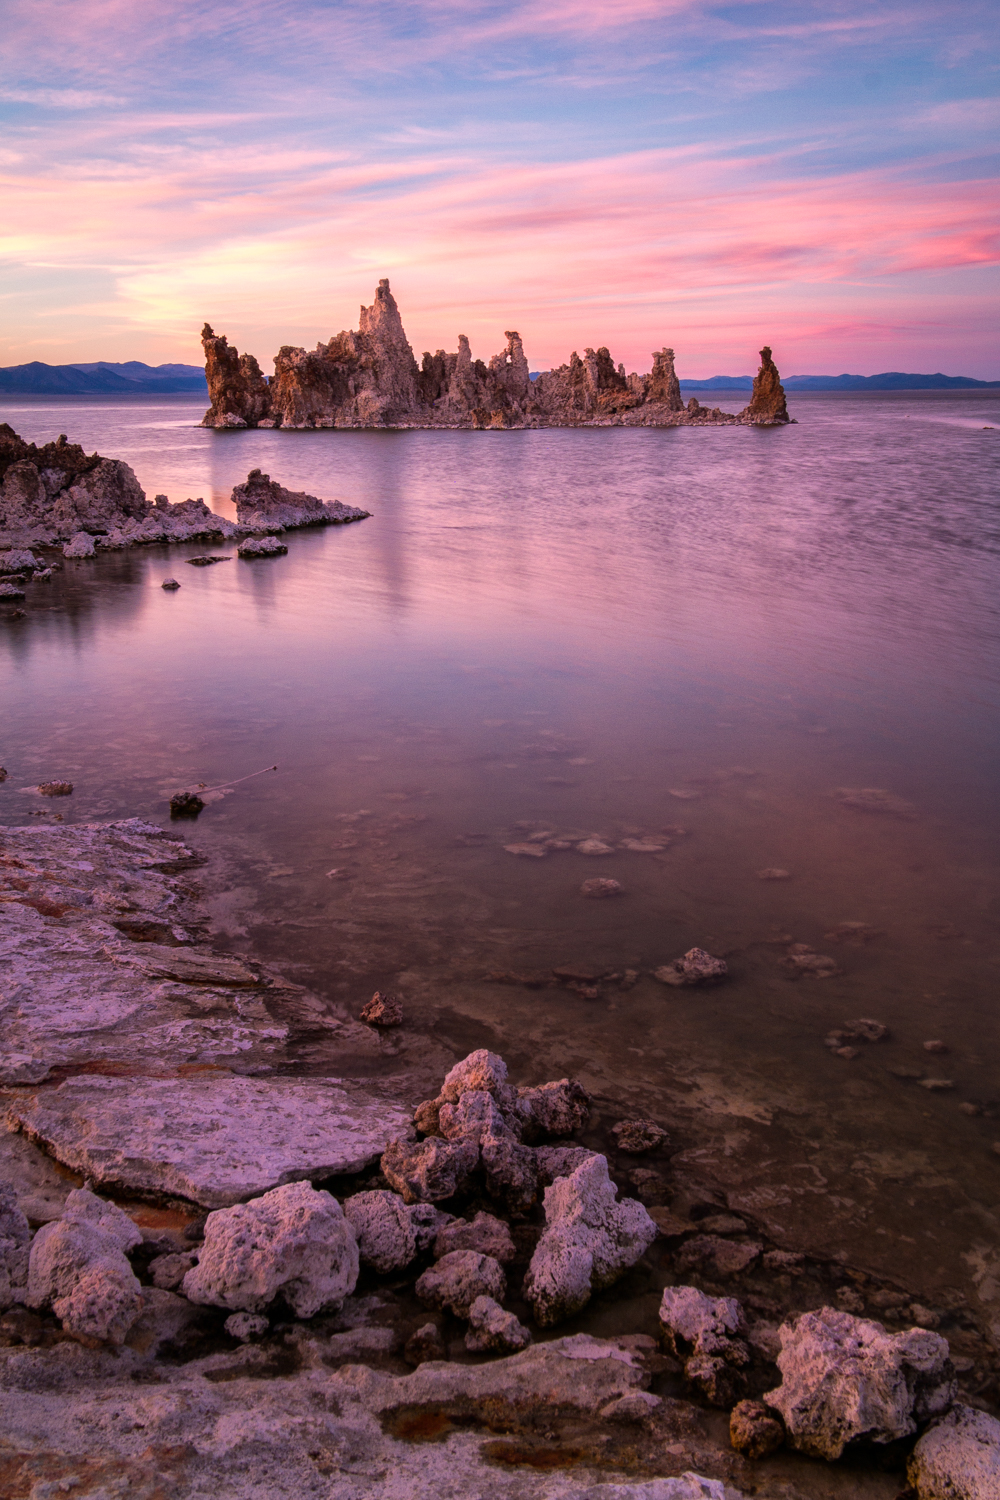 Wasim Muklashy Photography_Mono Lake_California_Samsung NX30_-SAM_1579_1500B